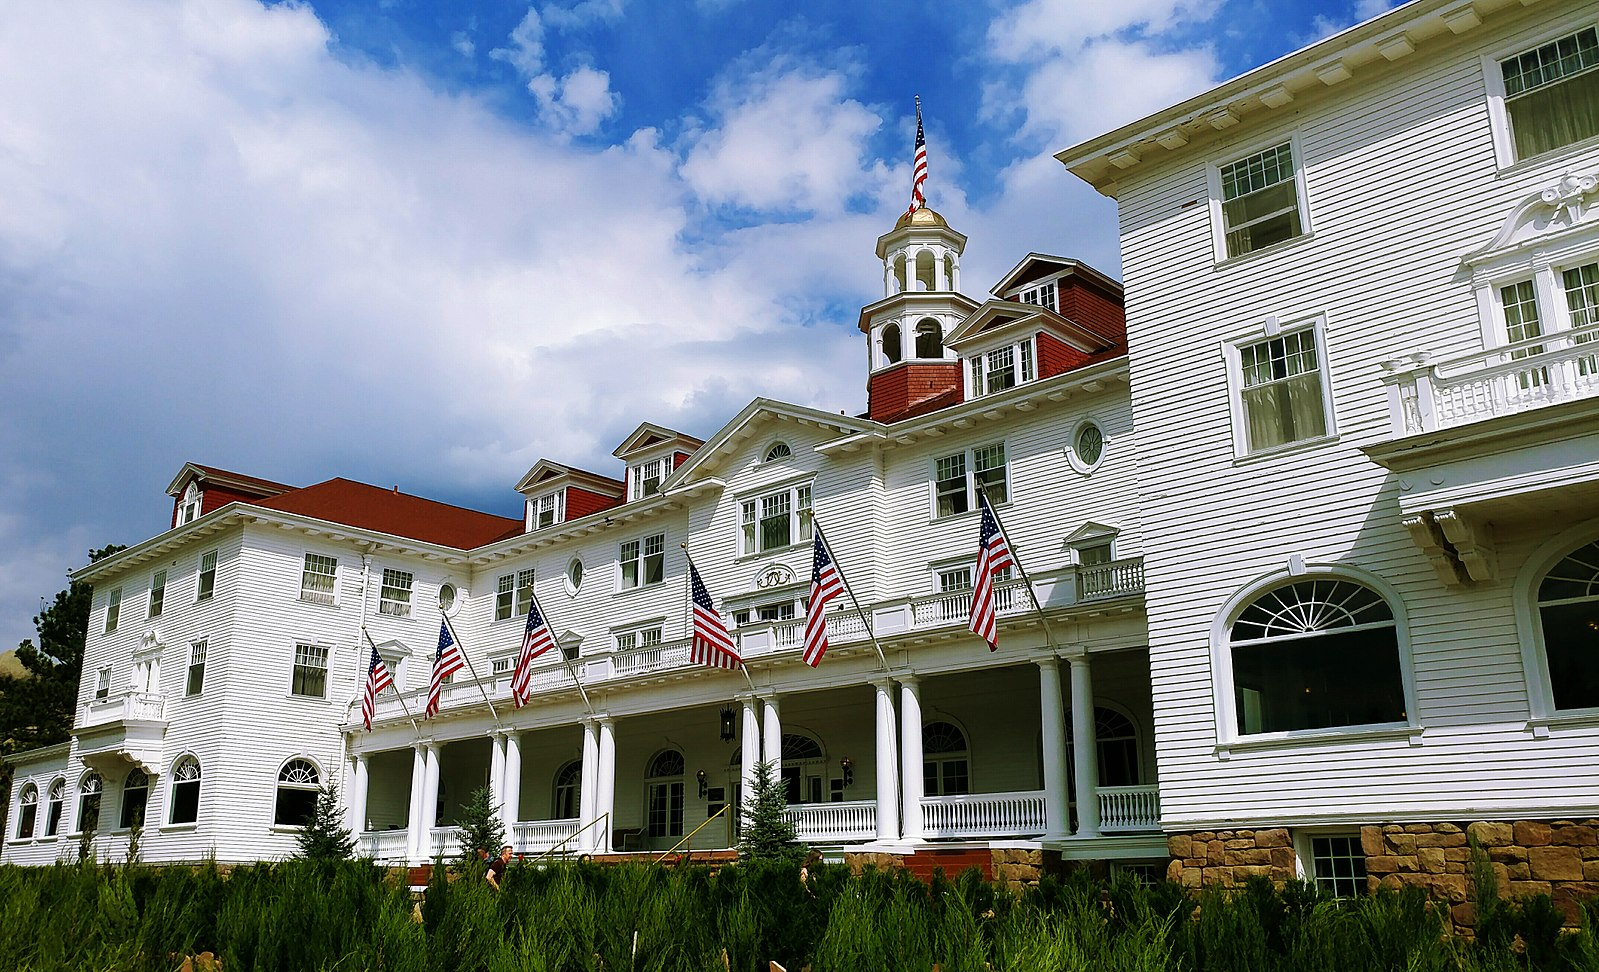 The_Stanley_Hotel,_Another_View